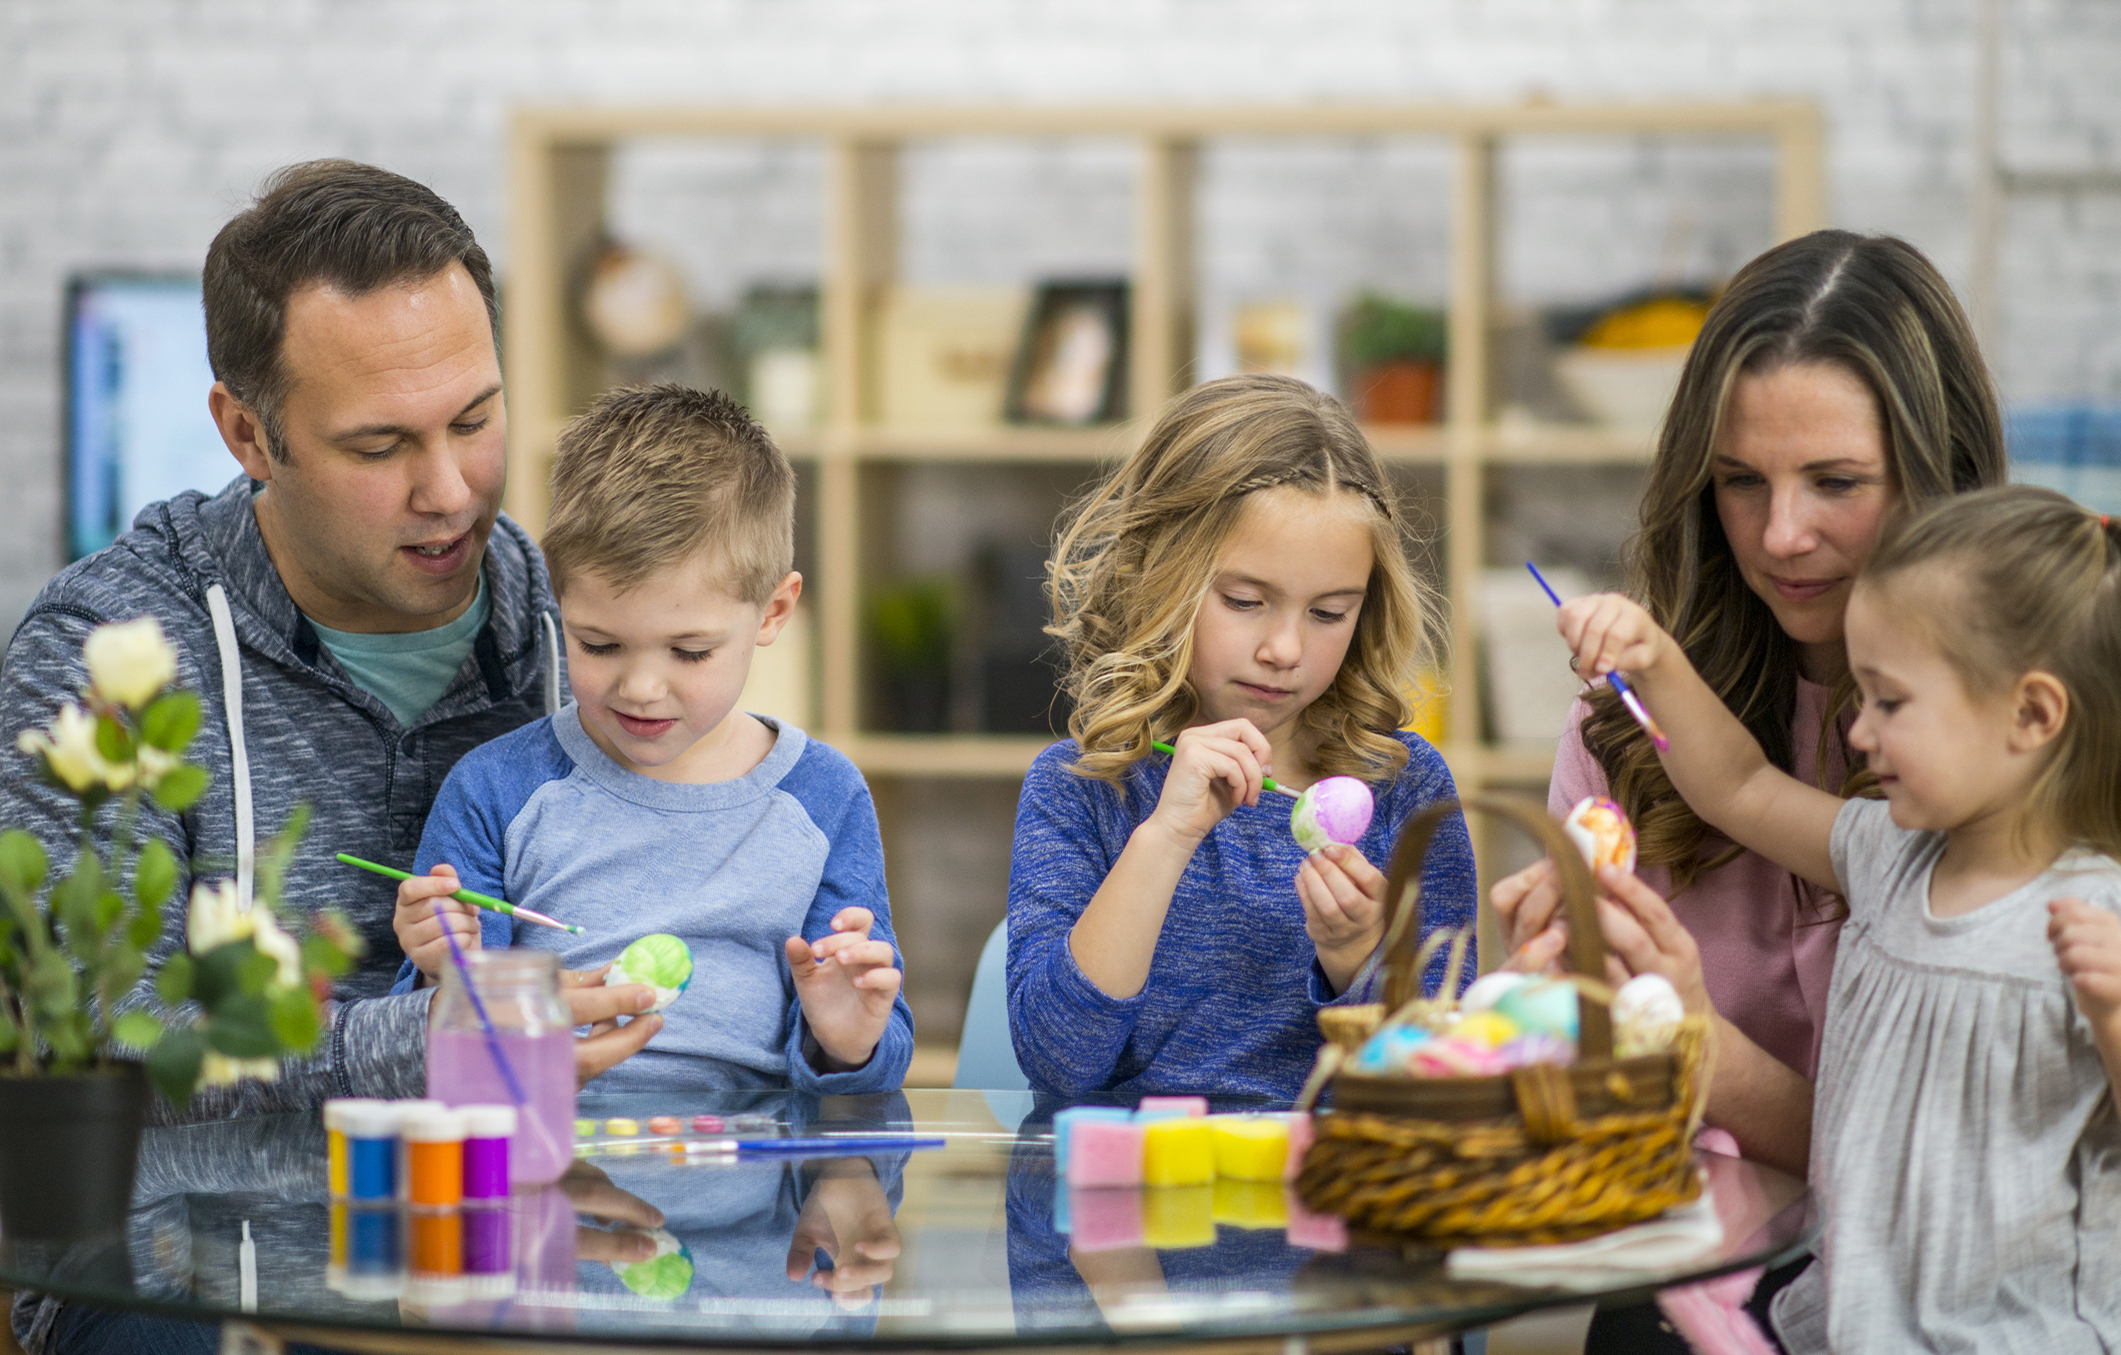 Overwhelm the Families in Your Church This Easter